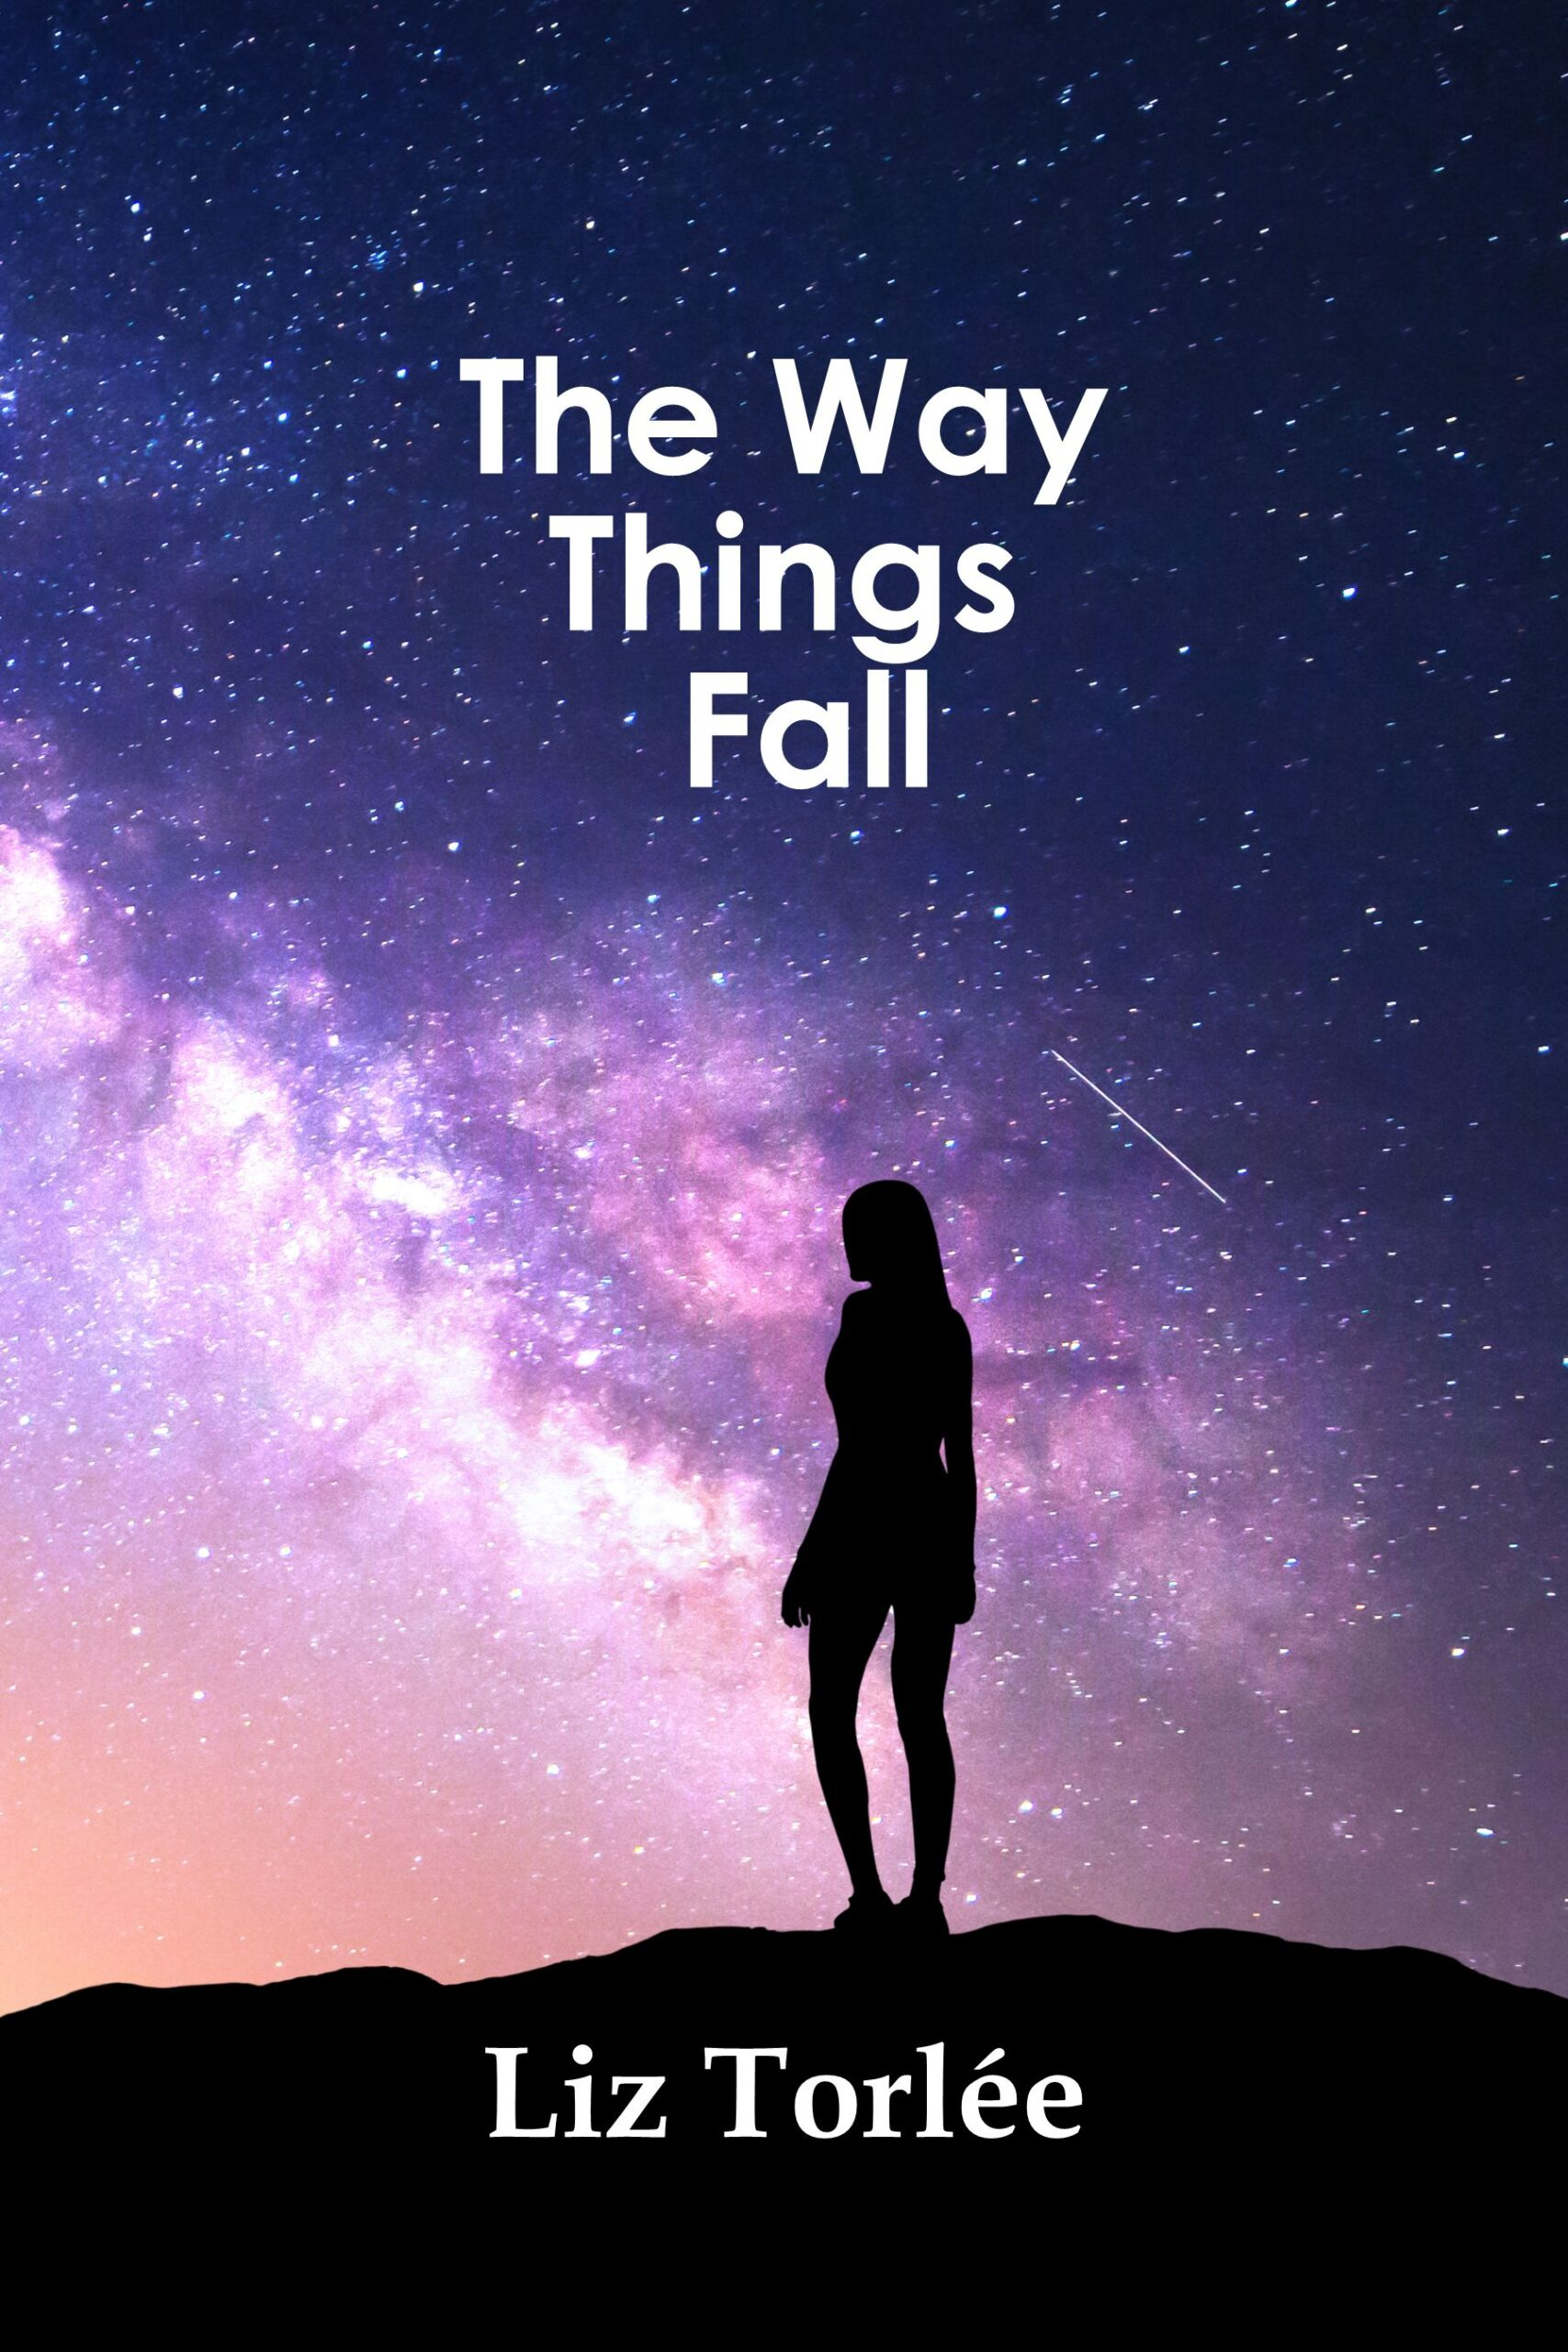 The Way Things Fall